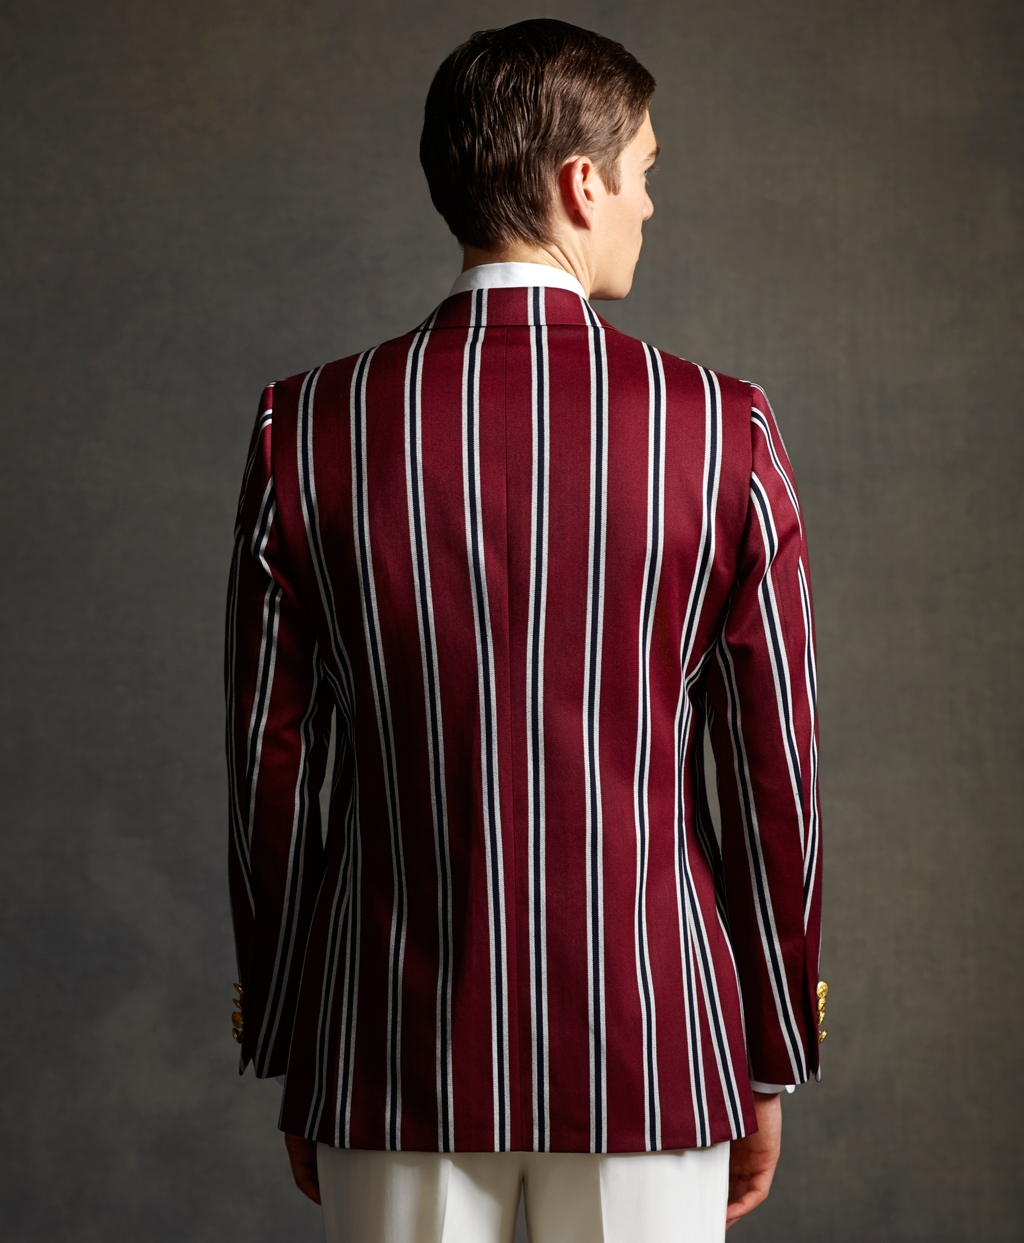 Brooks Brothers The Great Gatsby Collection Burgundy